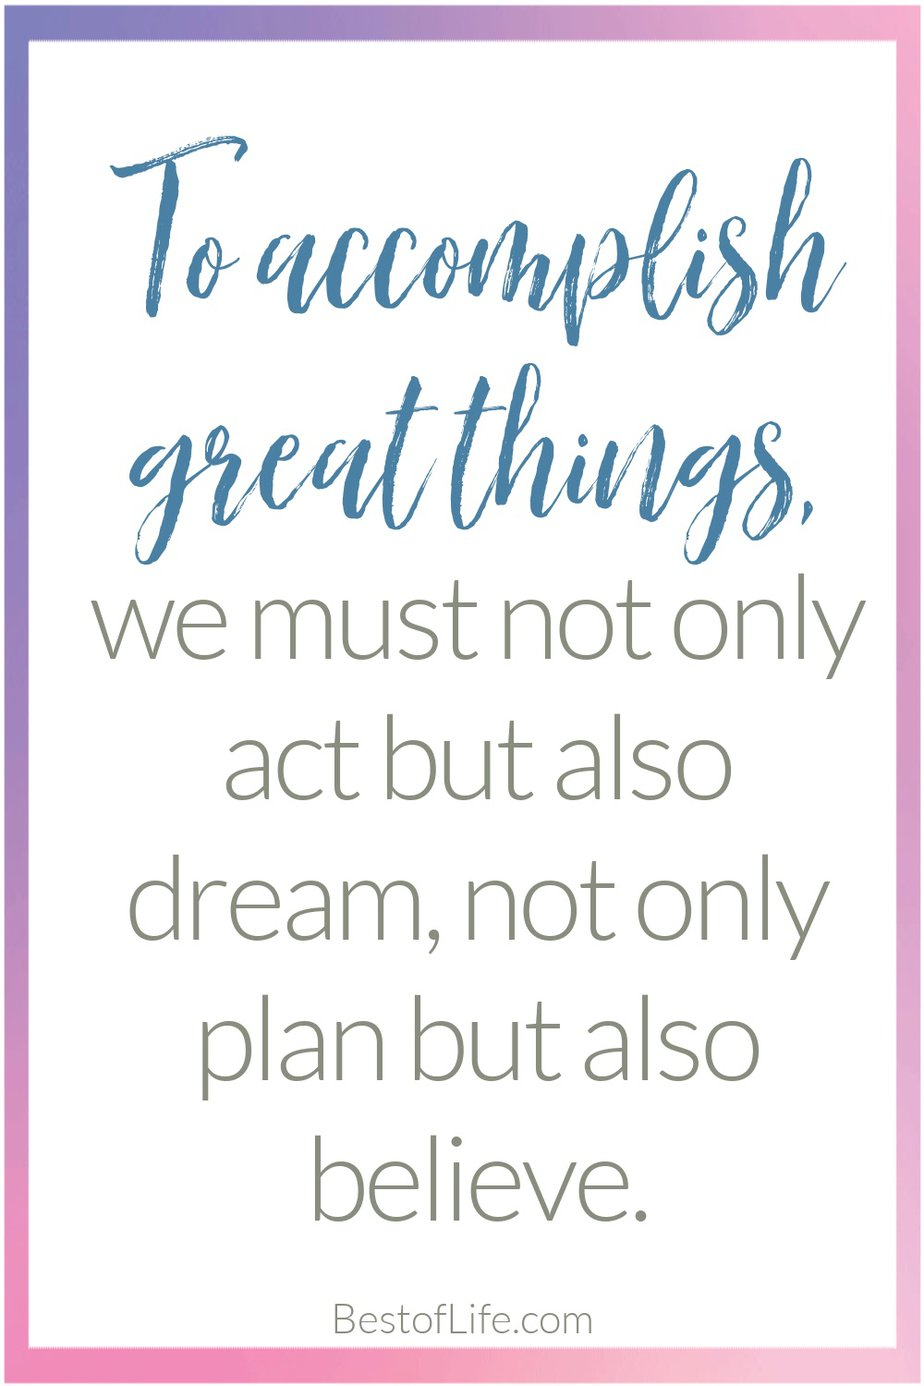 Graduation Quotes from Parents to Accomplish Great Things, We Must Not Only Act, But Also Dream. Not Only Plan But Also Believe